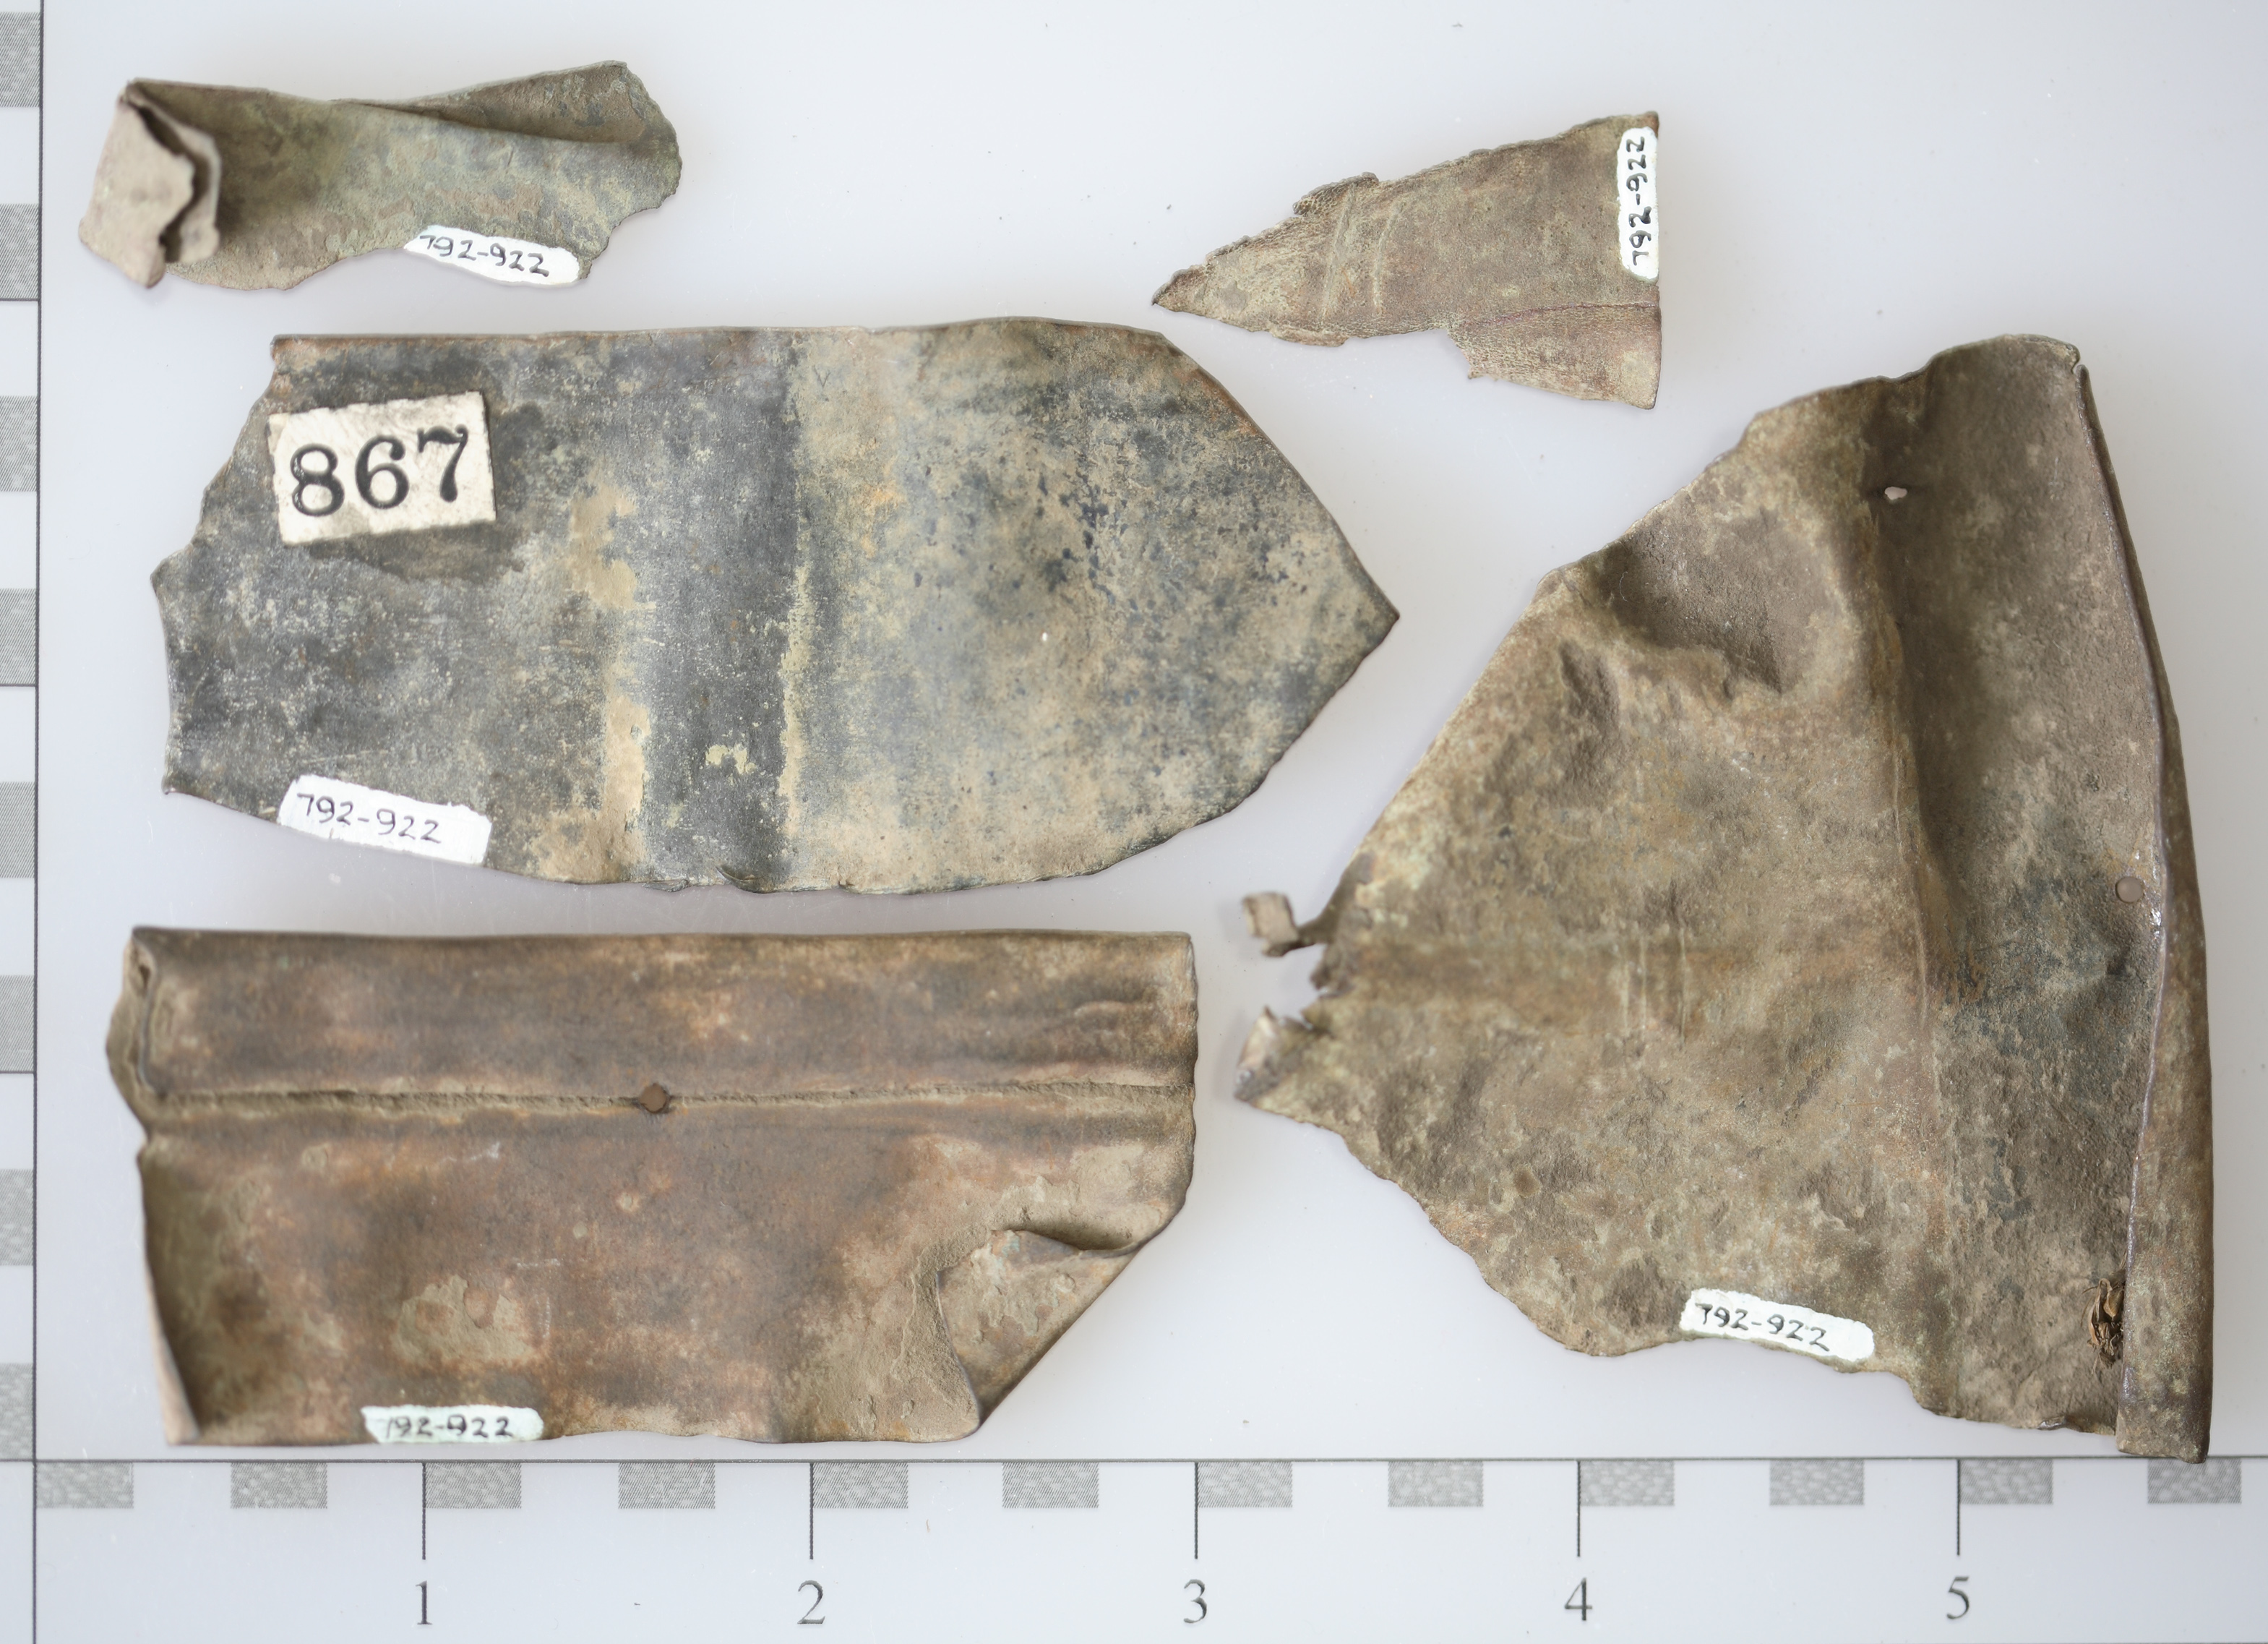 brass metal fragments, Fox Fort Site Massacre, McLean County Museum of History Collections